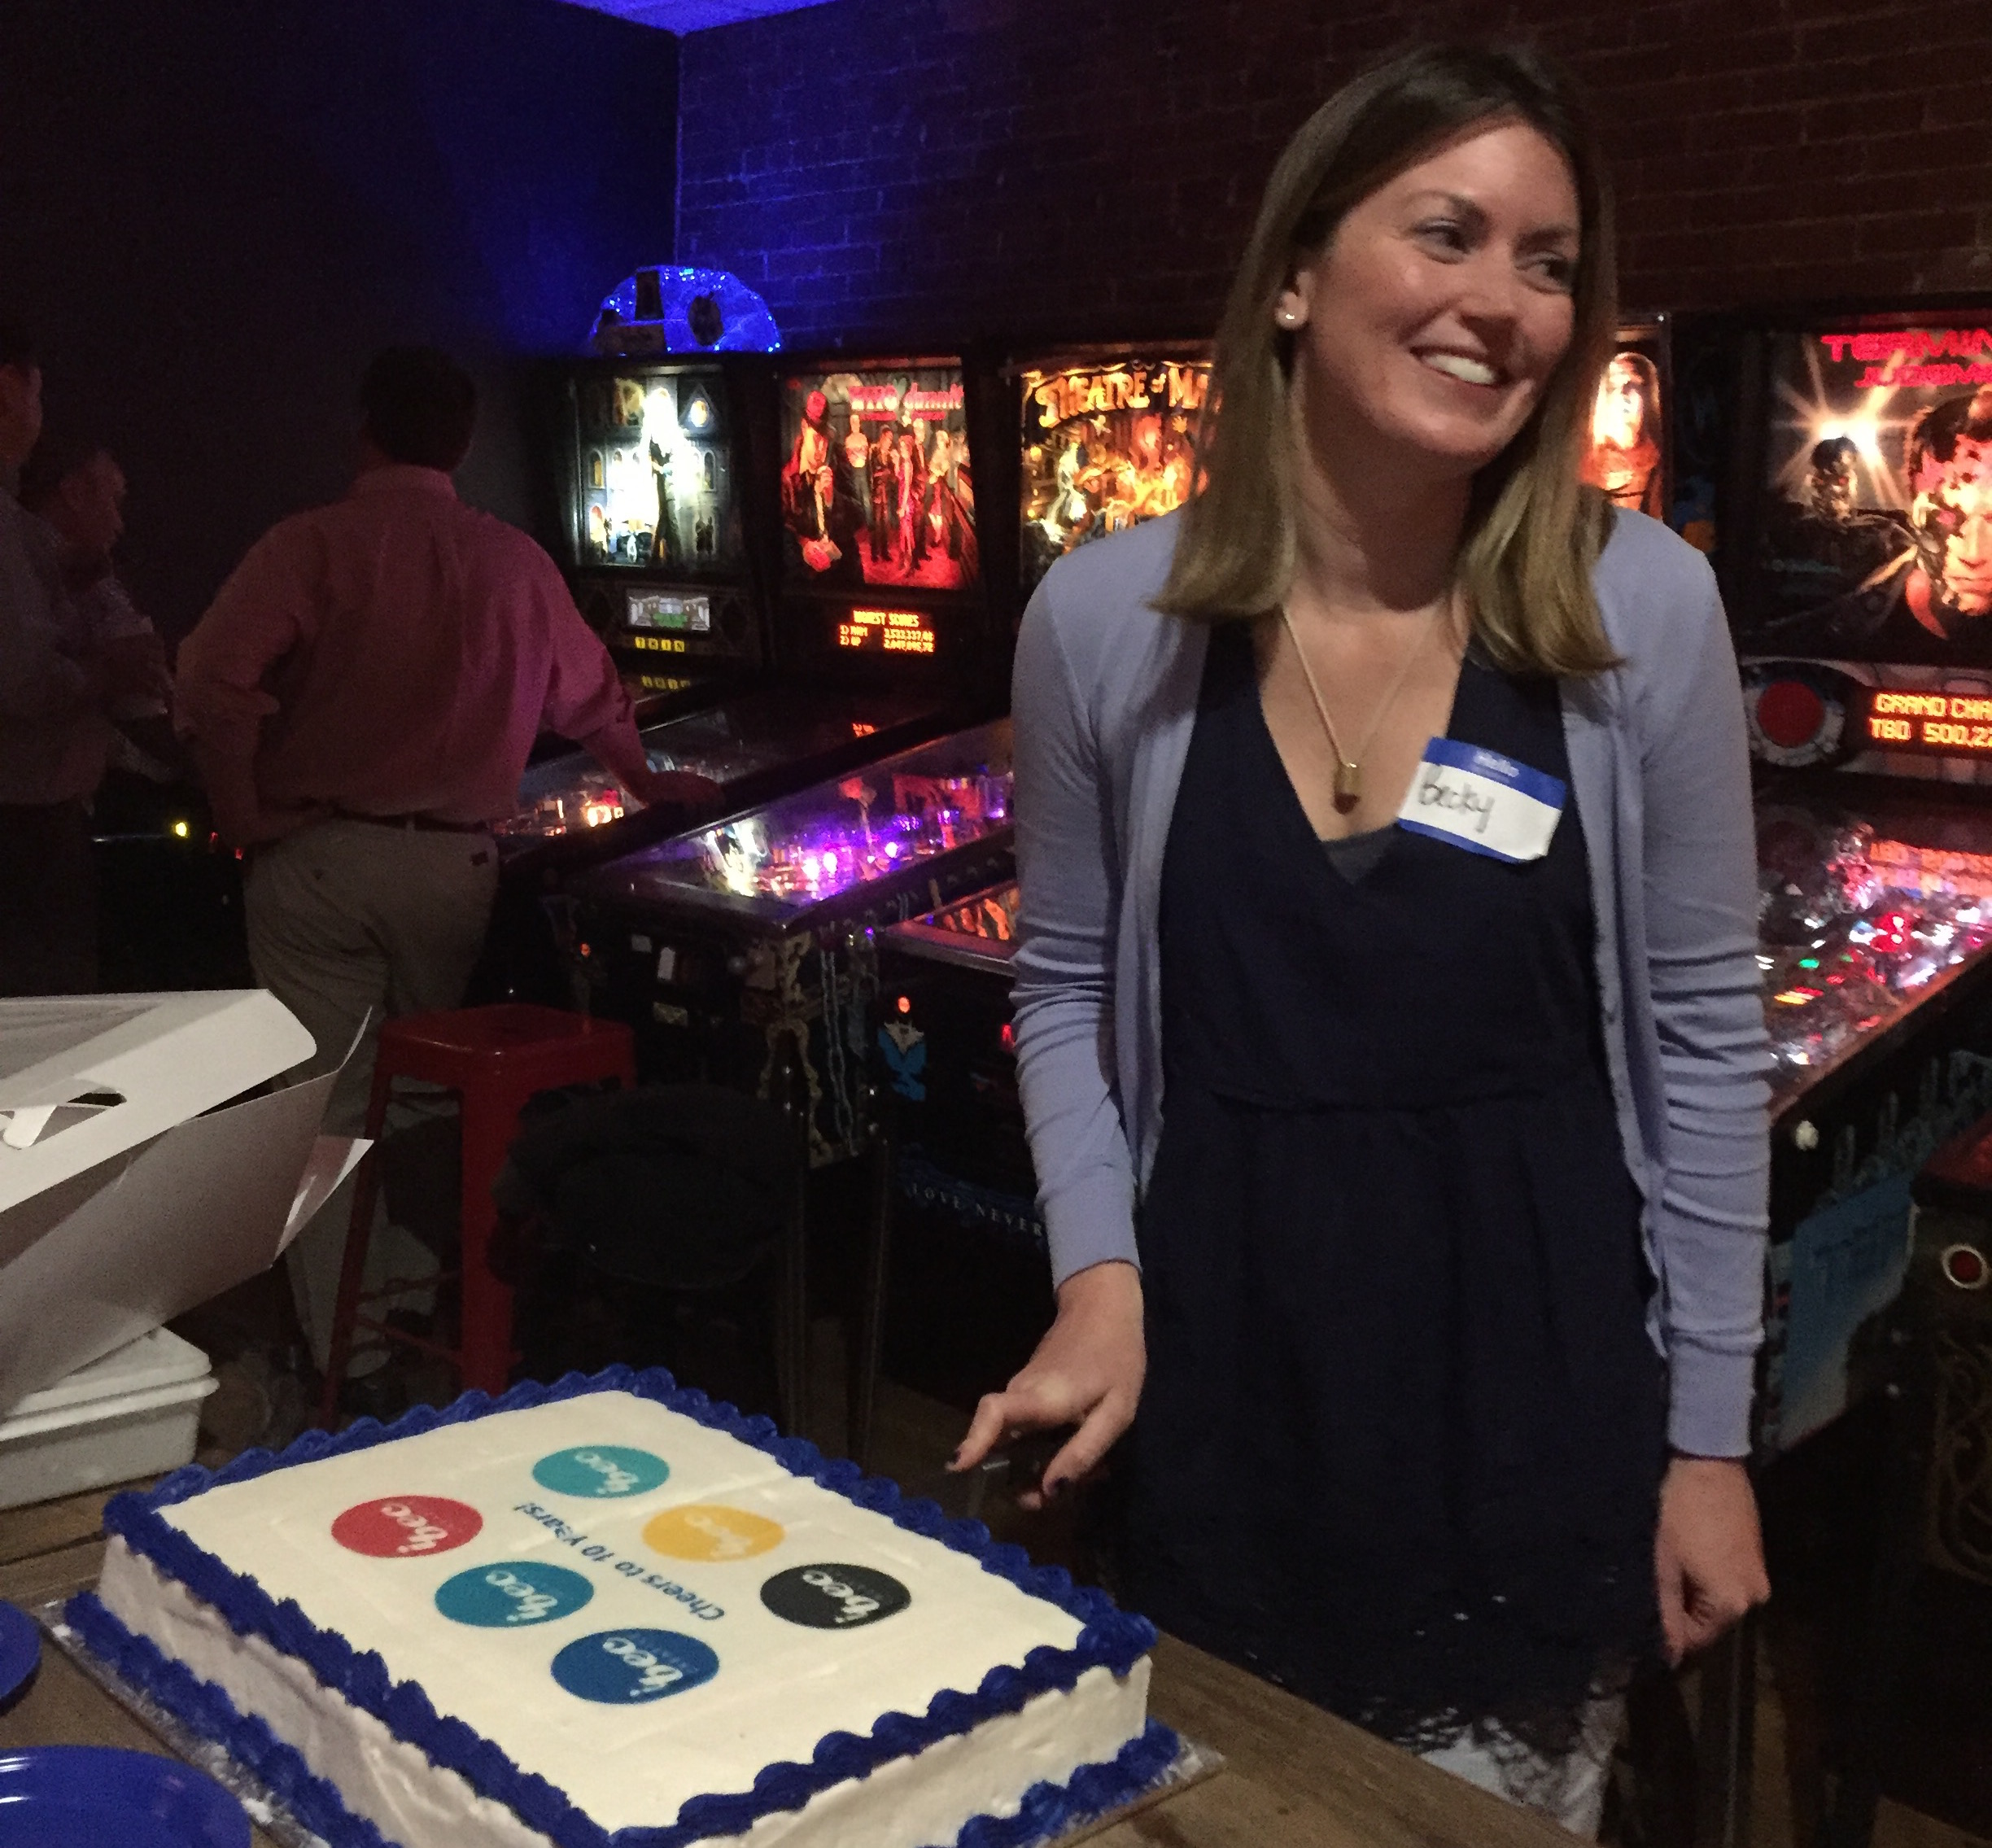 At local Arcade bar, Arcadia, iBec Founder, Becky McKinnell, makes the first cut into the cake to celebrate iBec's 10 year anniversary.